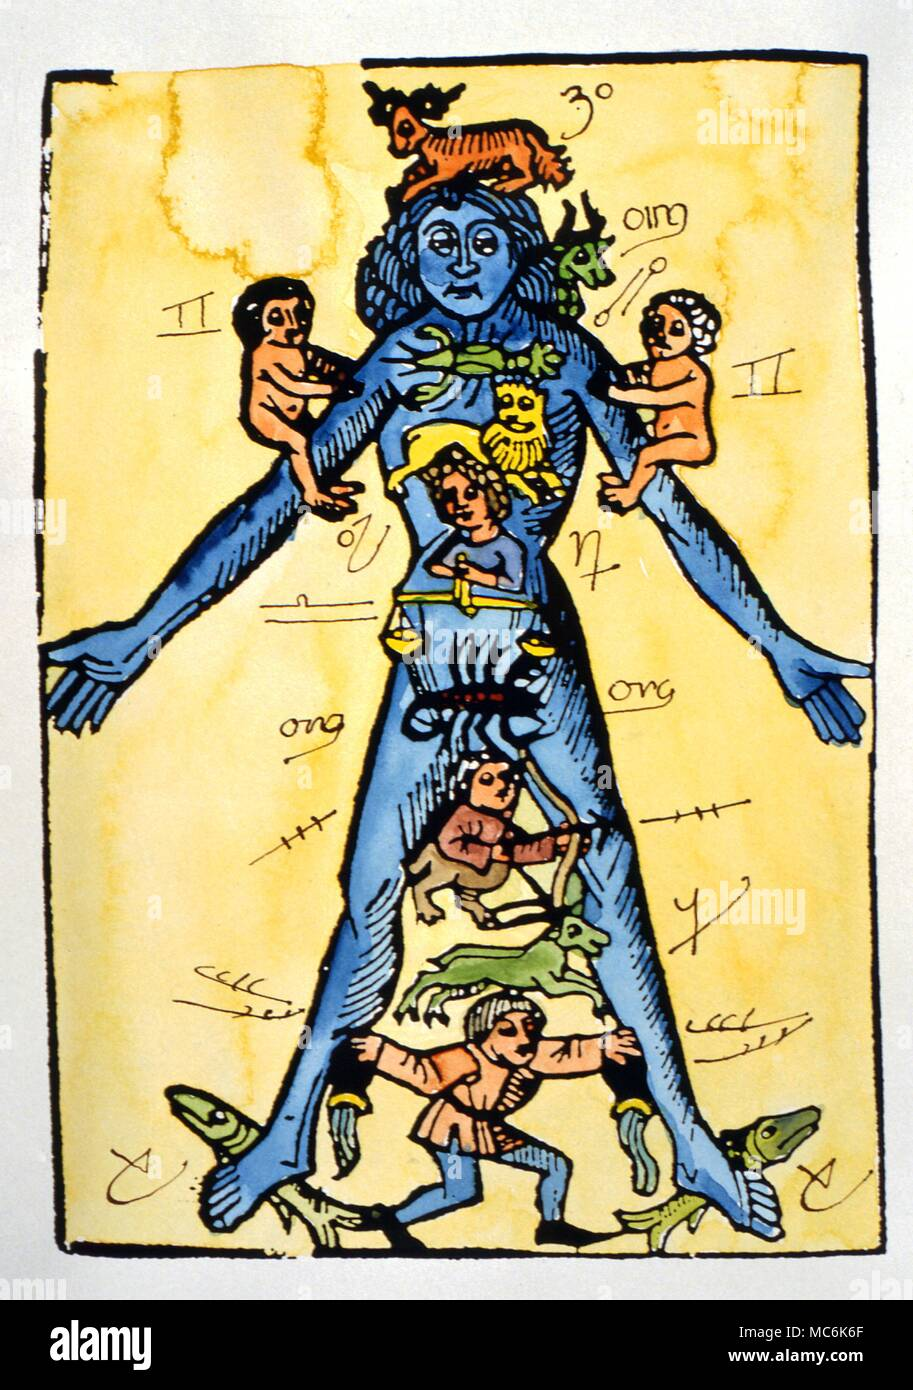 Zodiac Man . Late 15th century woodcut depicting the zodiacal man with the zodiac signs apportioned to the relevant parts of his body This print is unique in having manuscript sigils for the 12 signs overdrawn. Sigils are 15th century - Stock Image